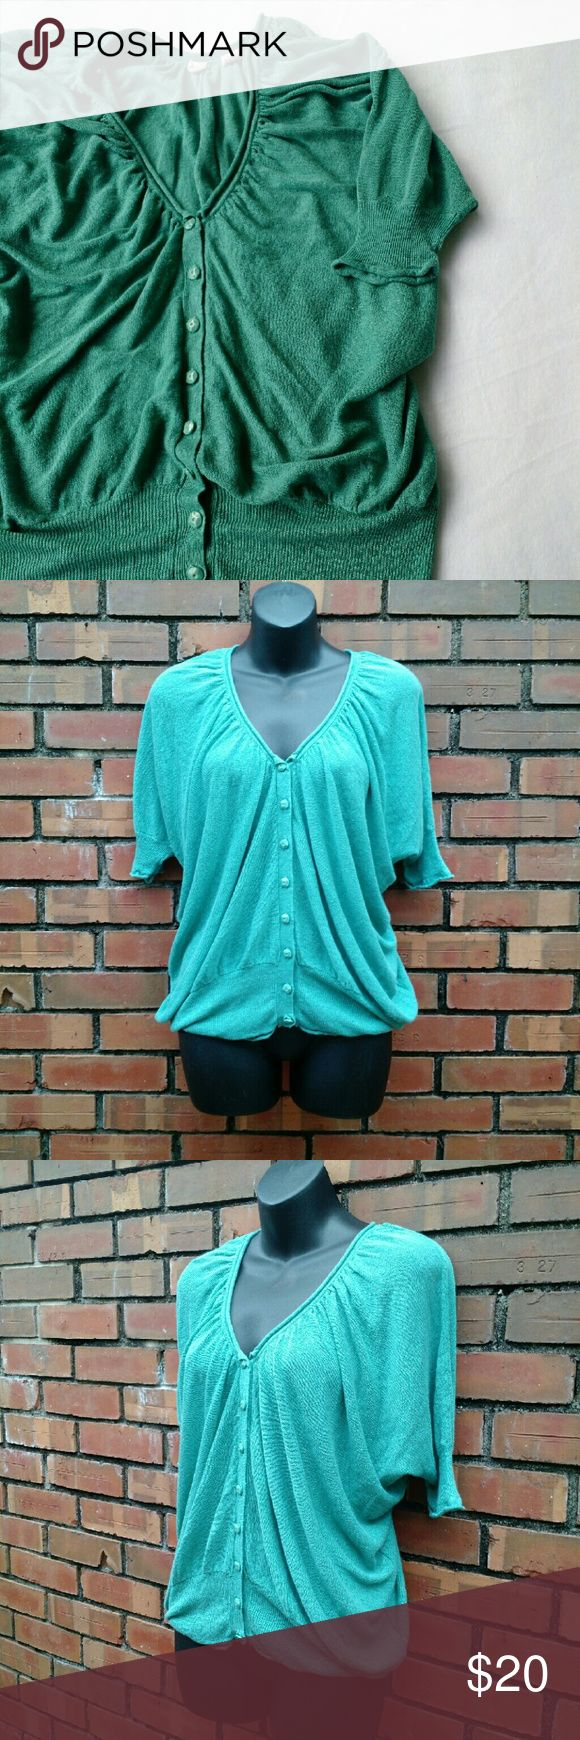 """Moth Linen Blend Slouchy Boho Sweater Top Cute slouchy short sleeve cardigan top by Moth. Beautiful aqua green color. No major flaws. Chest measures approximately 20"""", but it's hard to tell due to the shape of the shirt.   Offers are always welcome!  E&T Anthropologie Sweaters Cardigans"""